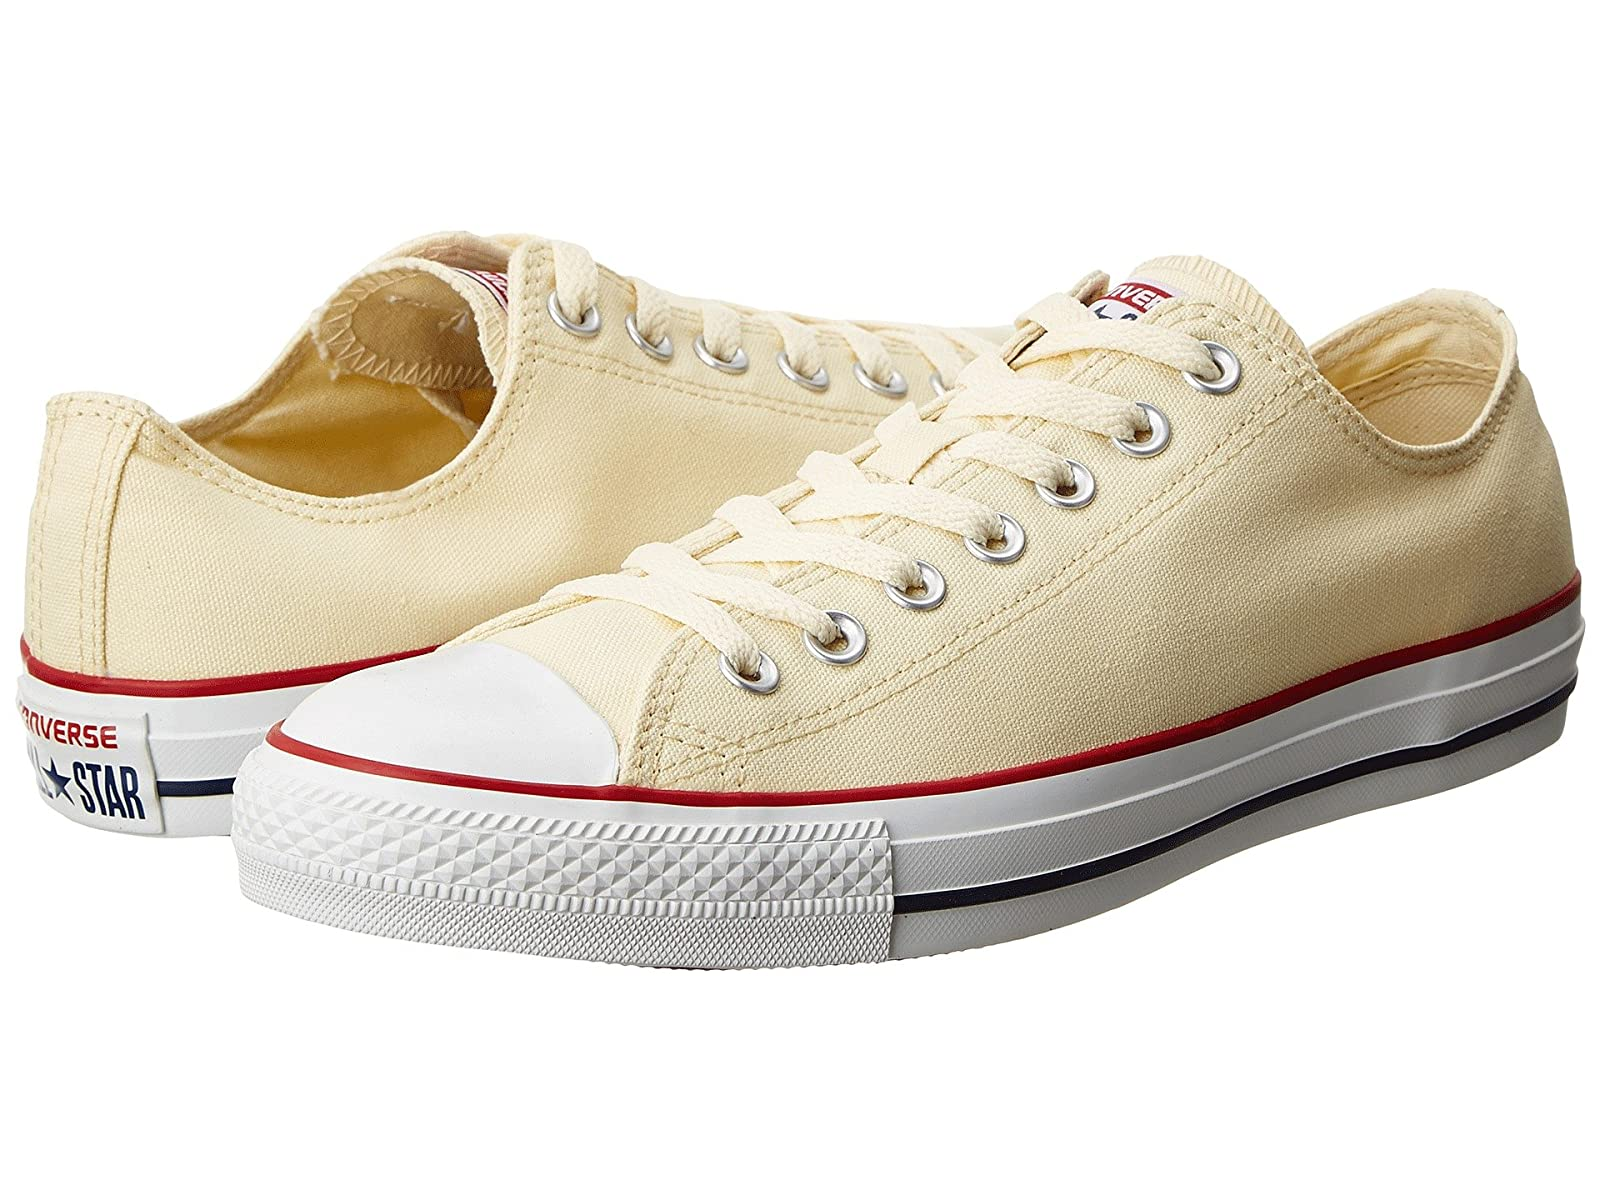 Converse Chuck Taylor® Ox-Super All Star® Core Ox-Super Taylor® Good Ware-Gentlemen/Ladies 86329c